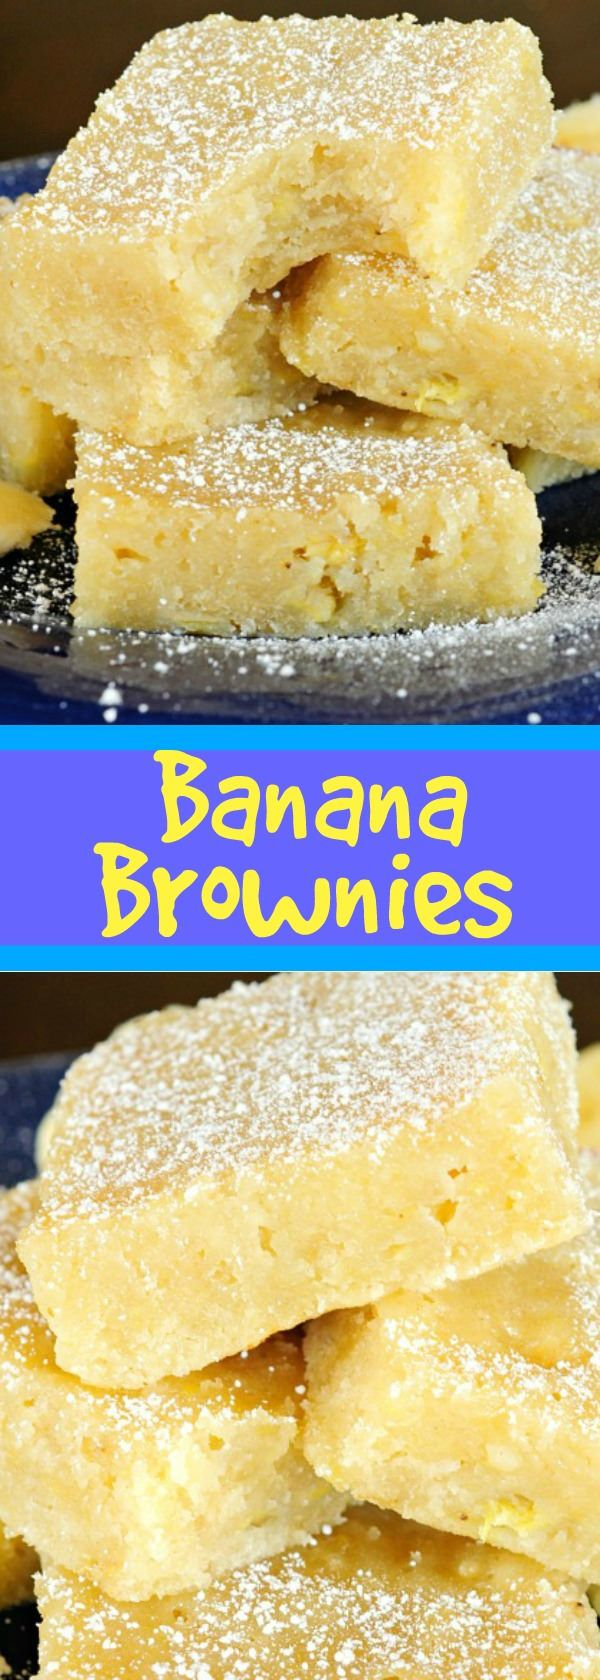 The delicious banana flavor and the fudgy, dense texture of a brownie is so good. You'll love the recipe!